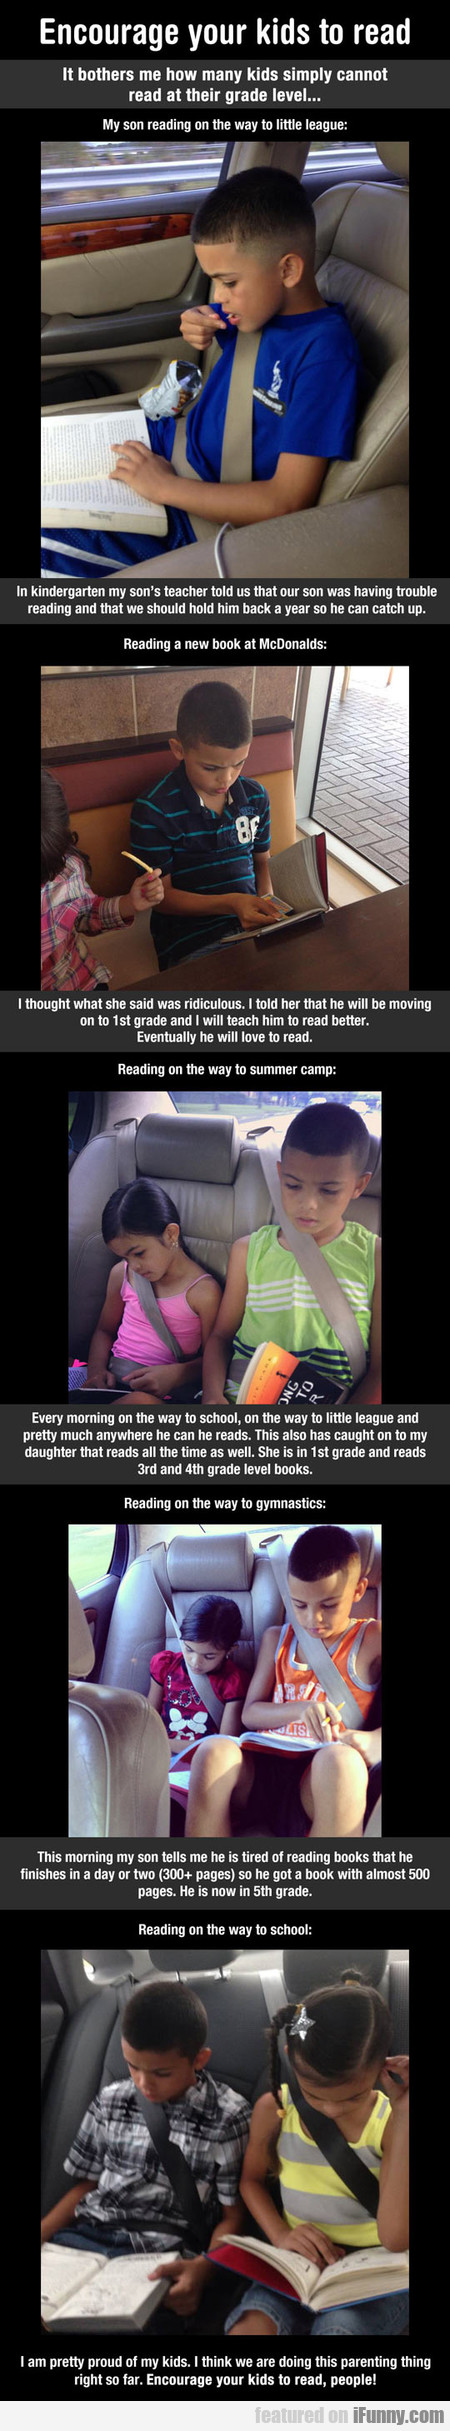 encourage your kids to read